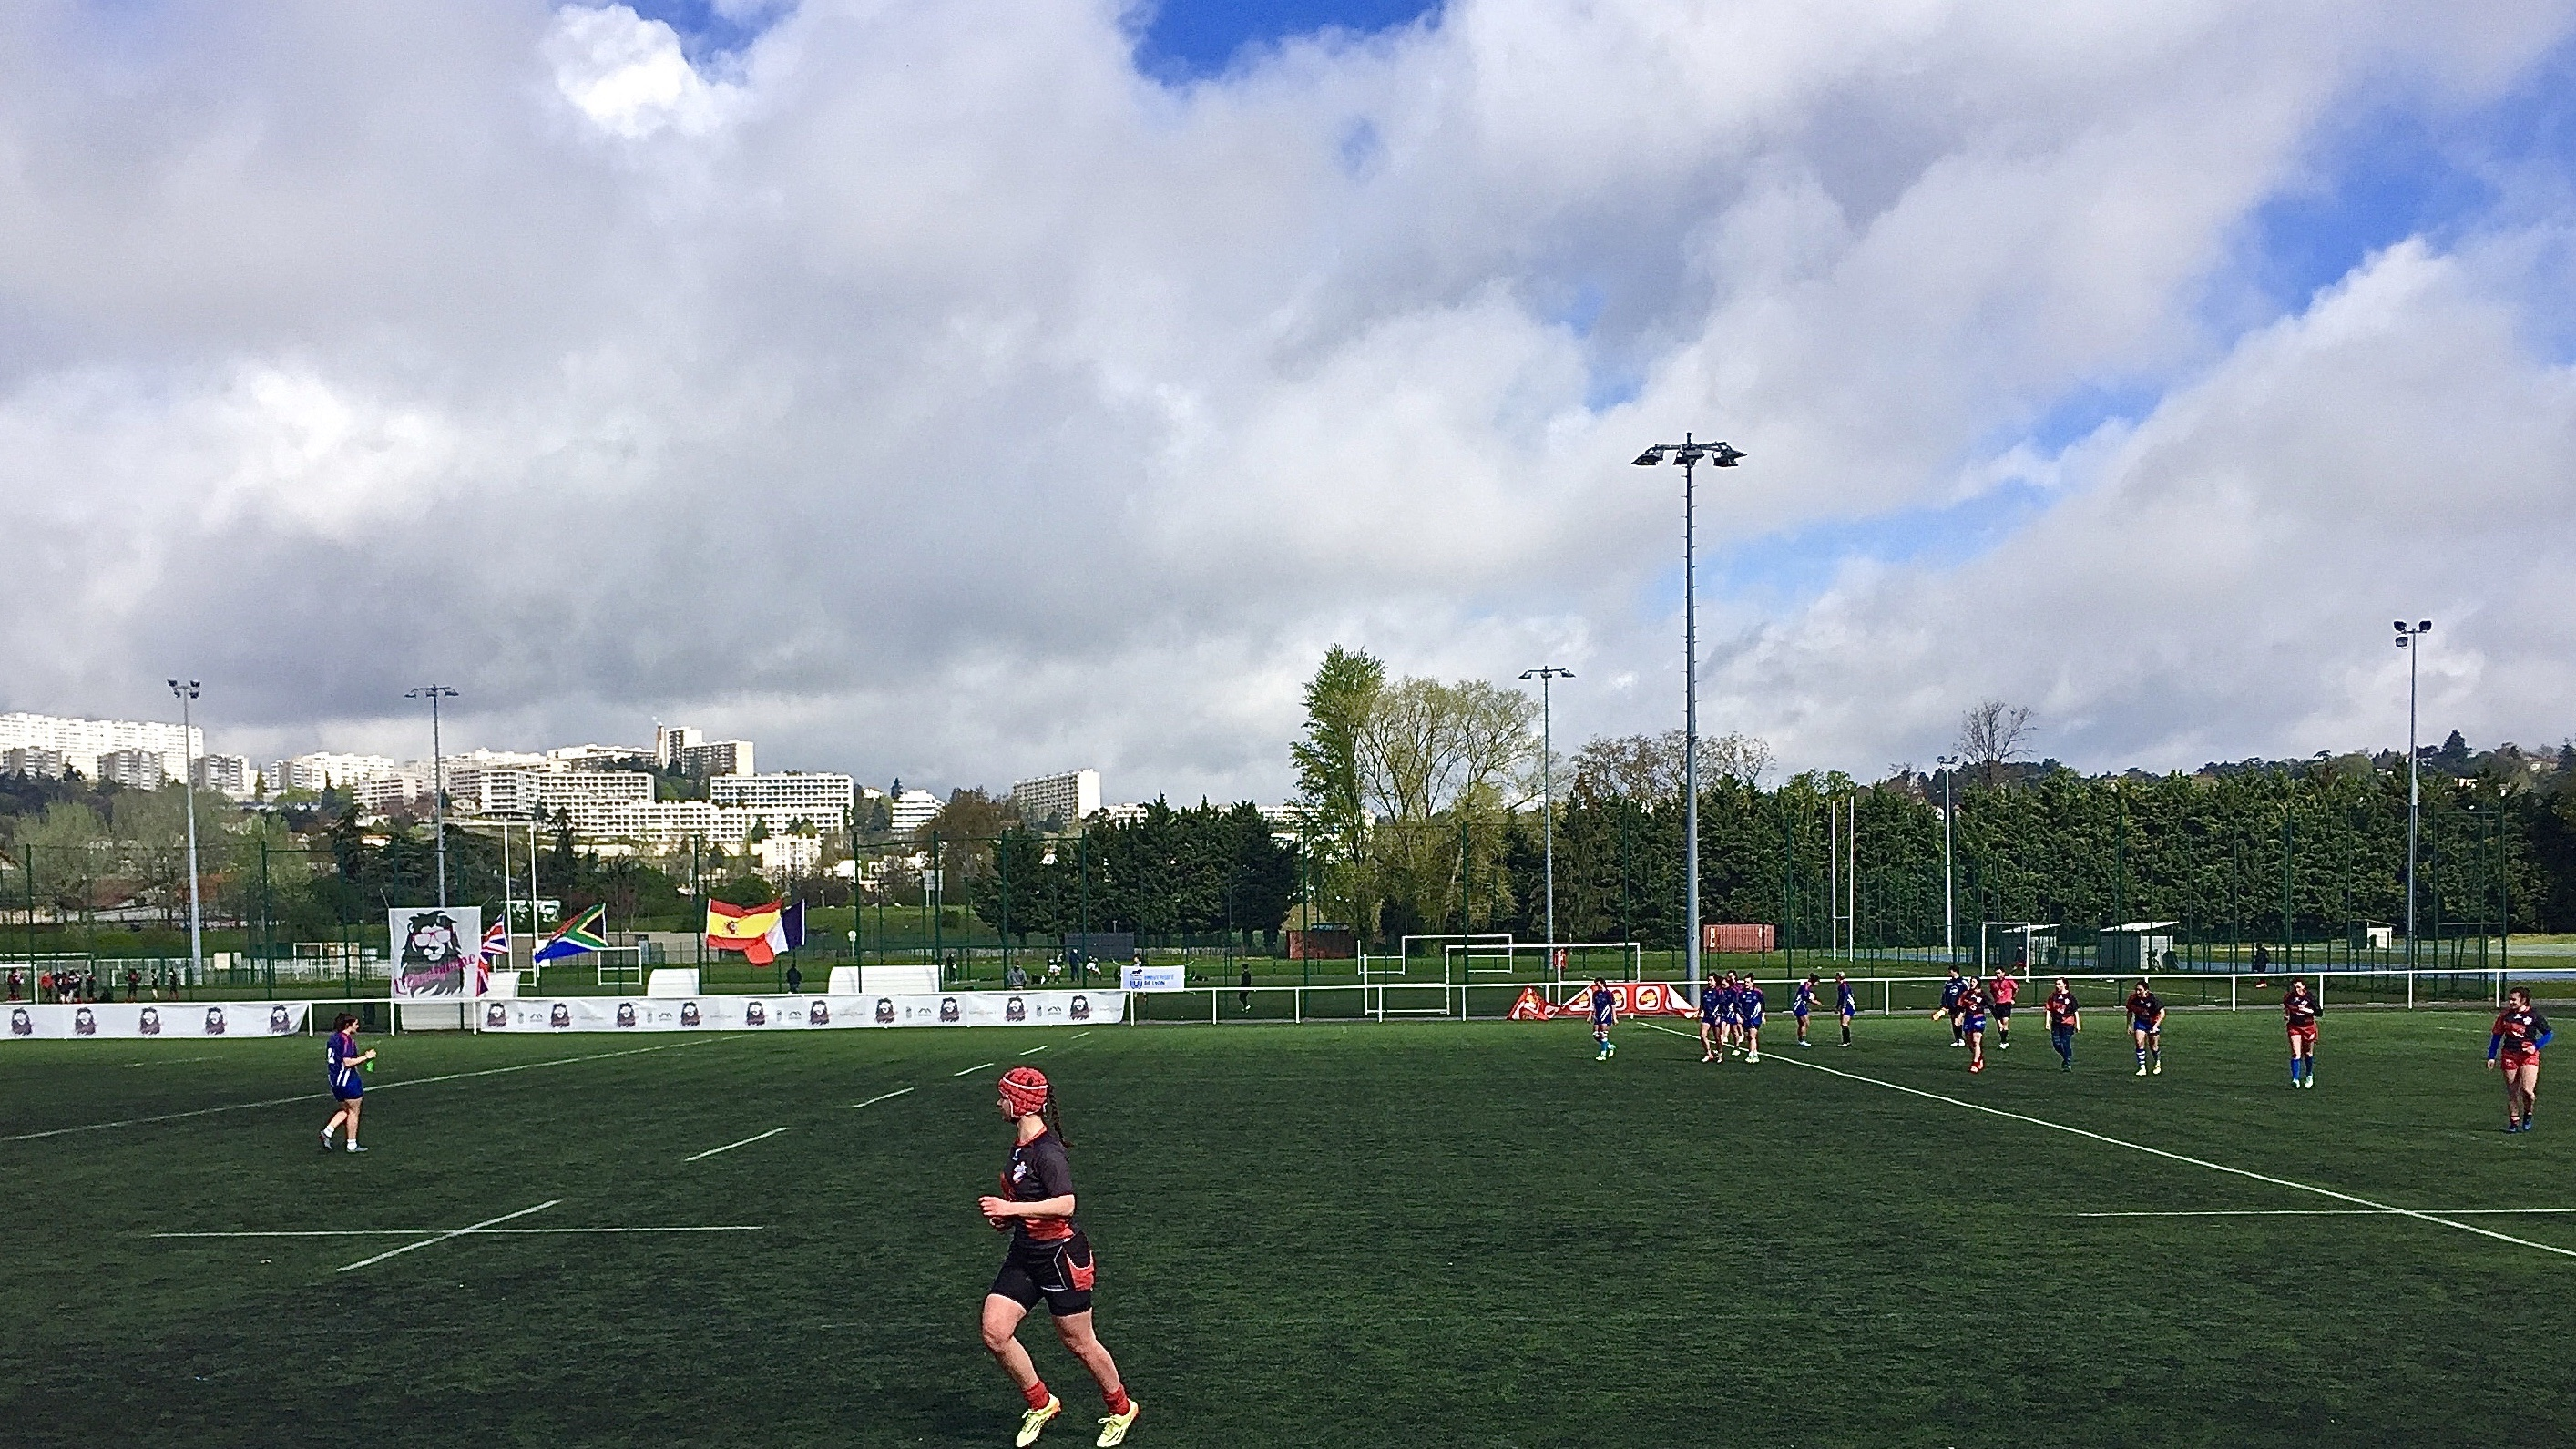 Ovalyonne Sevens : Tournoi international de rugby féminin